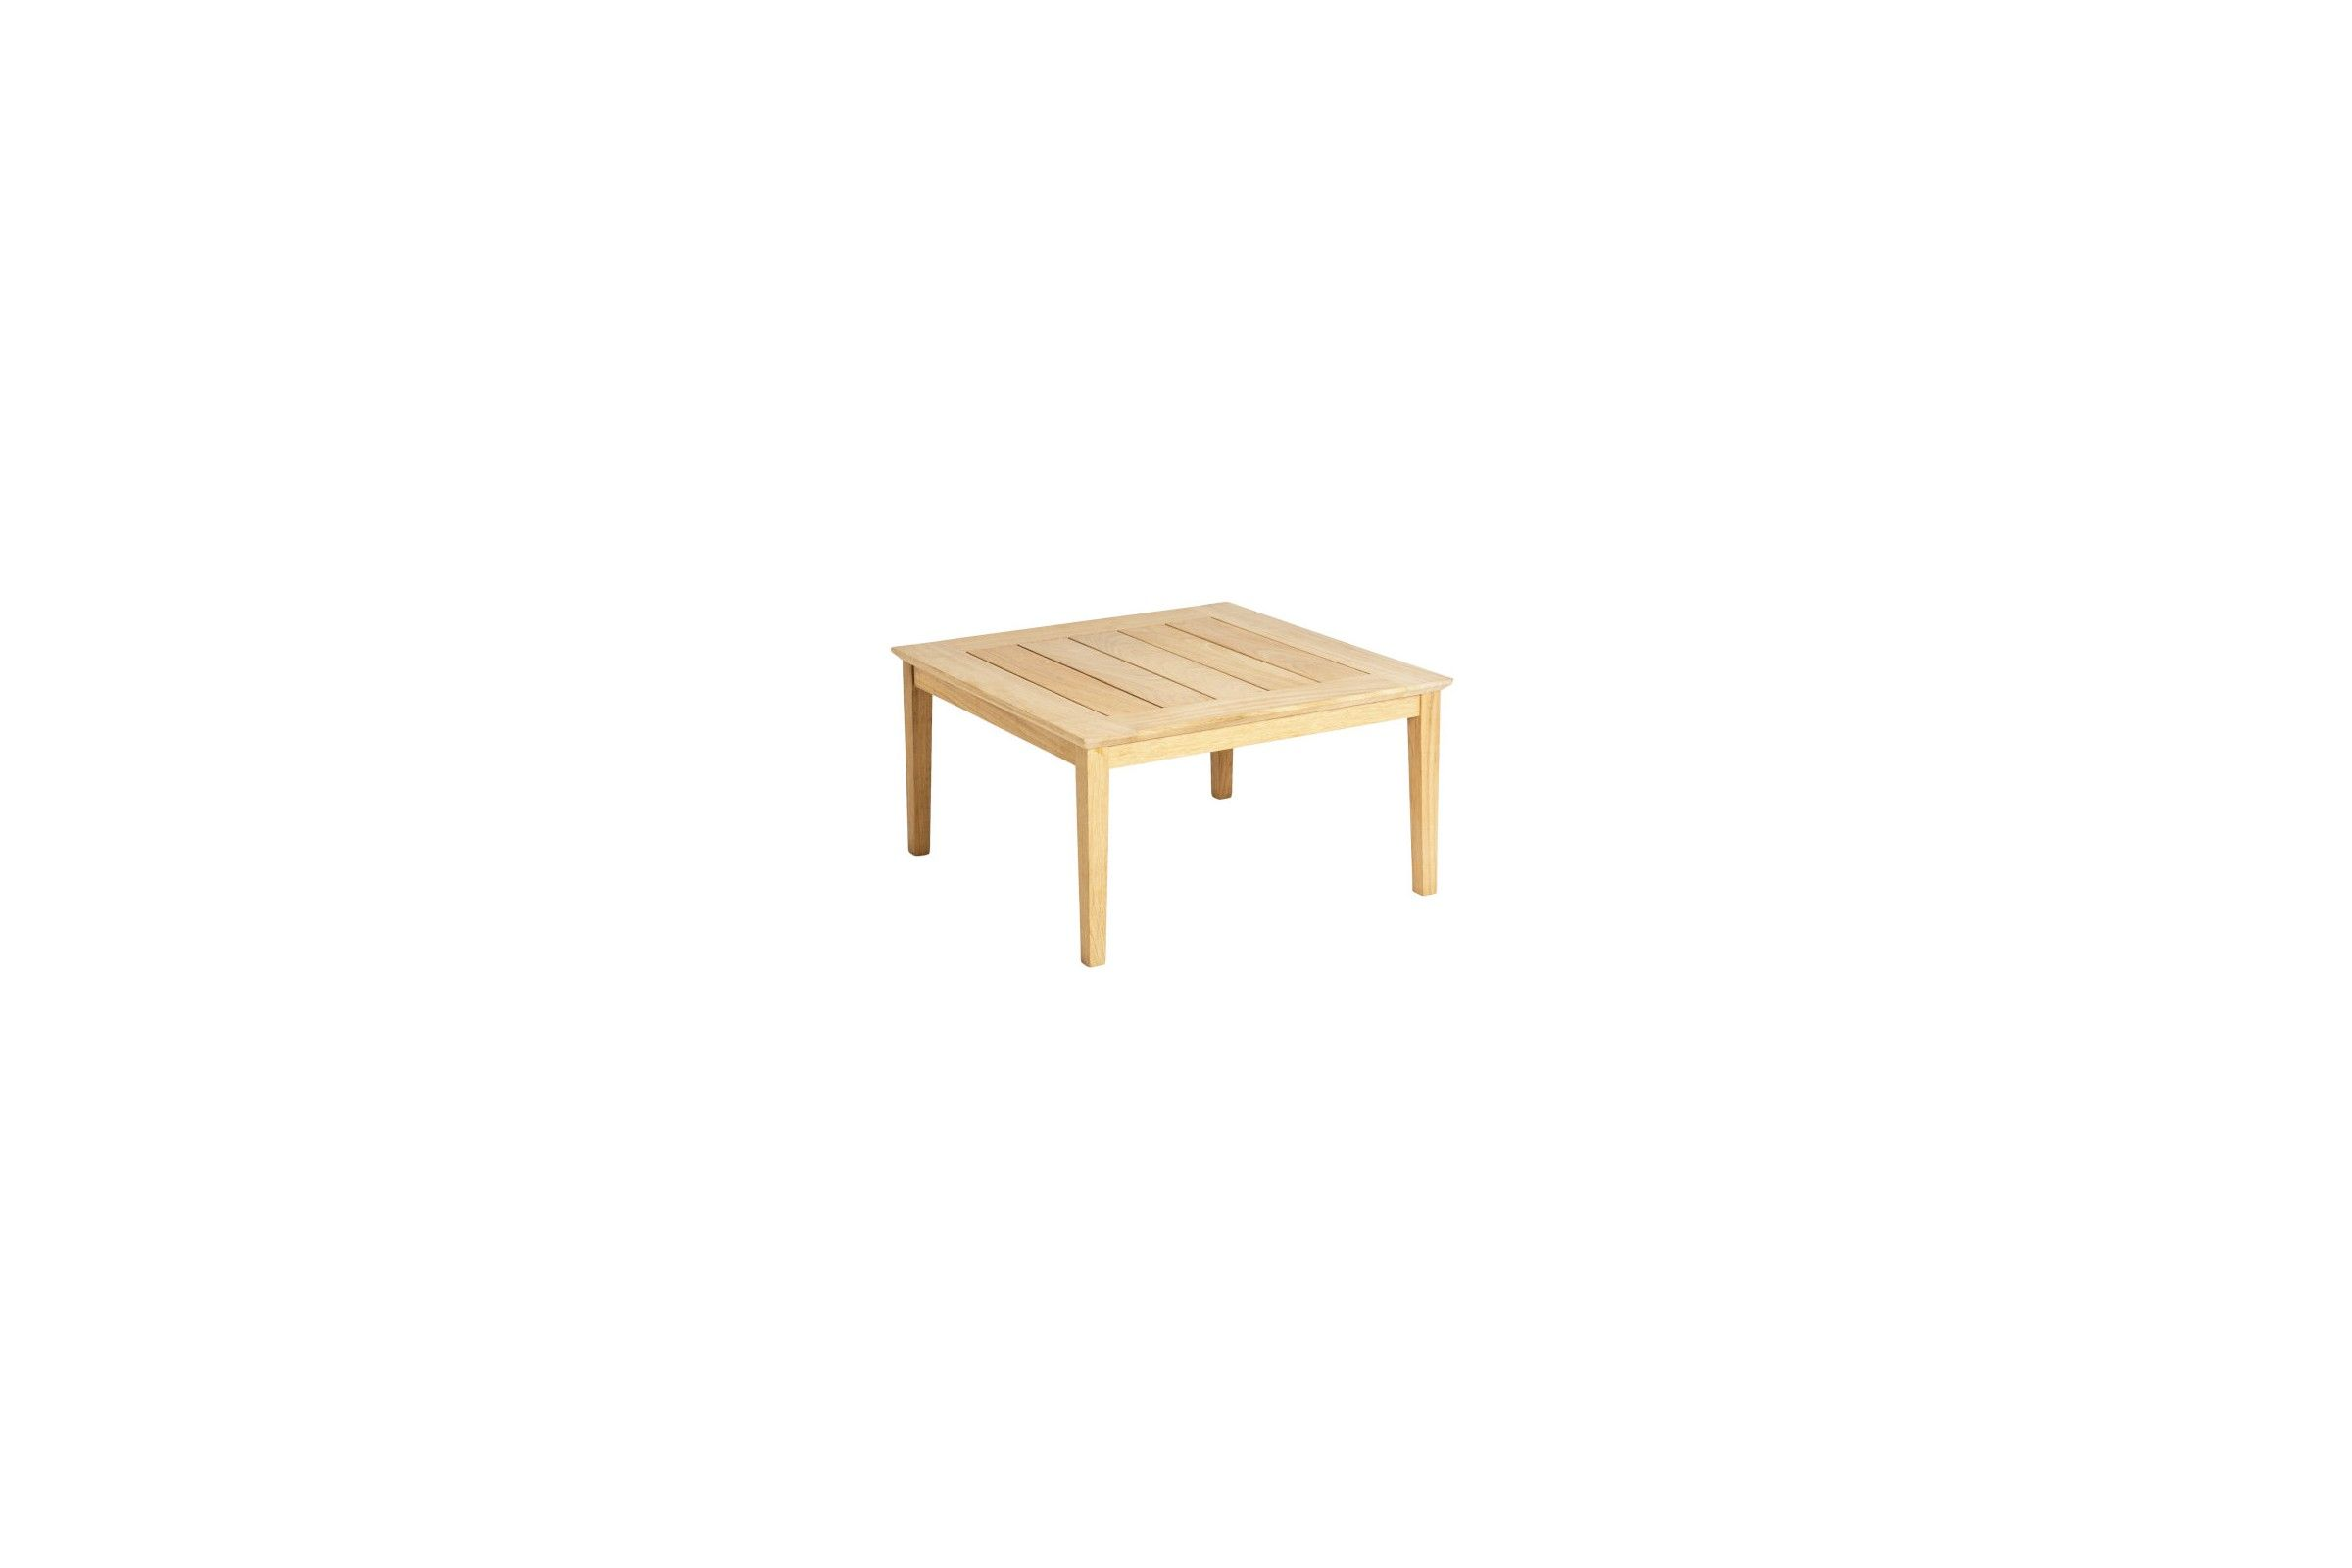 table basse carr e 80 cm en bois pour salon de jardin la galerie du teck. Black Bedroom Furniture Sets. Home Design Ideas